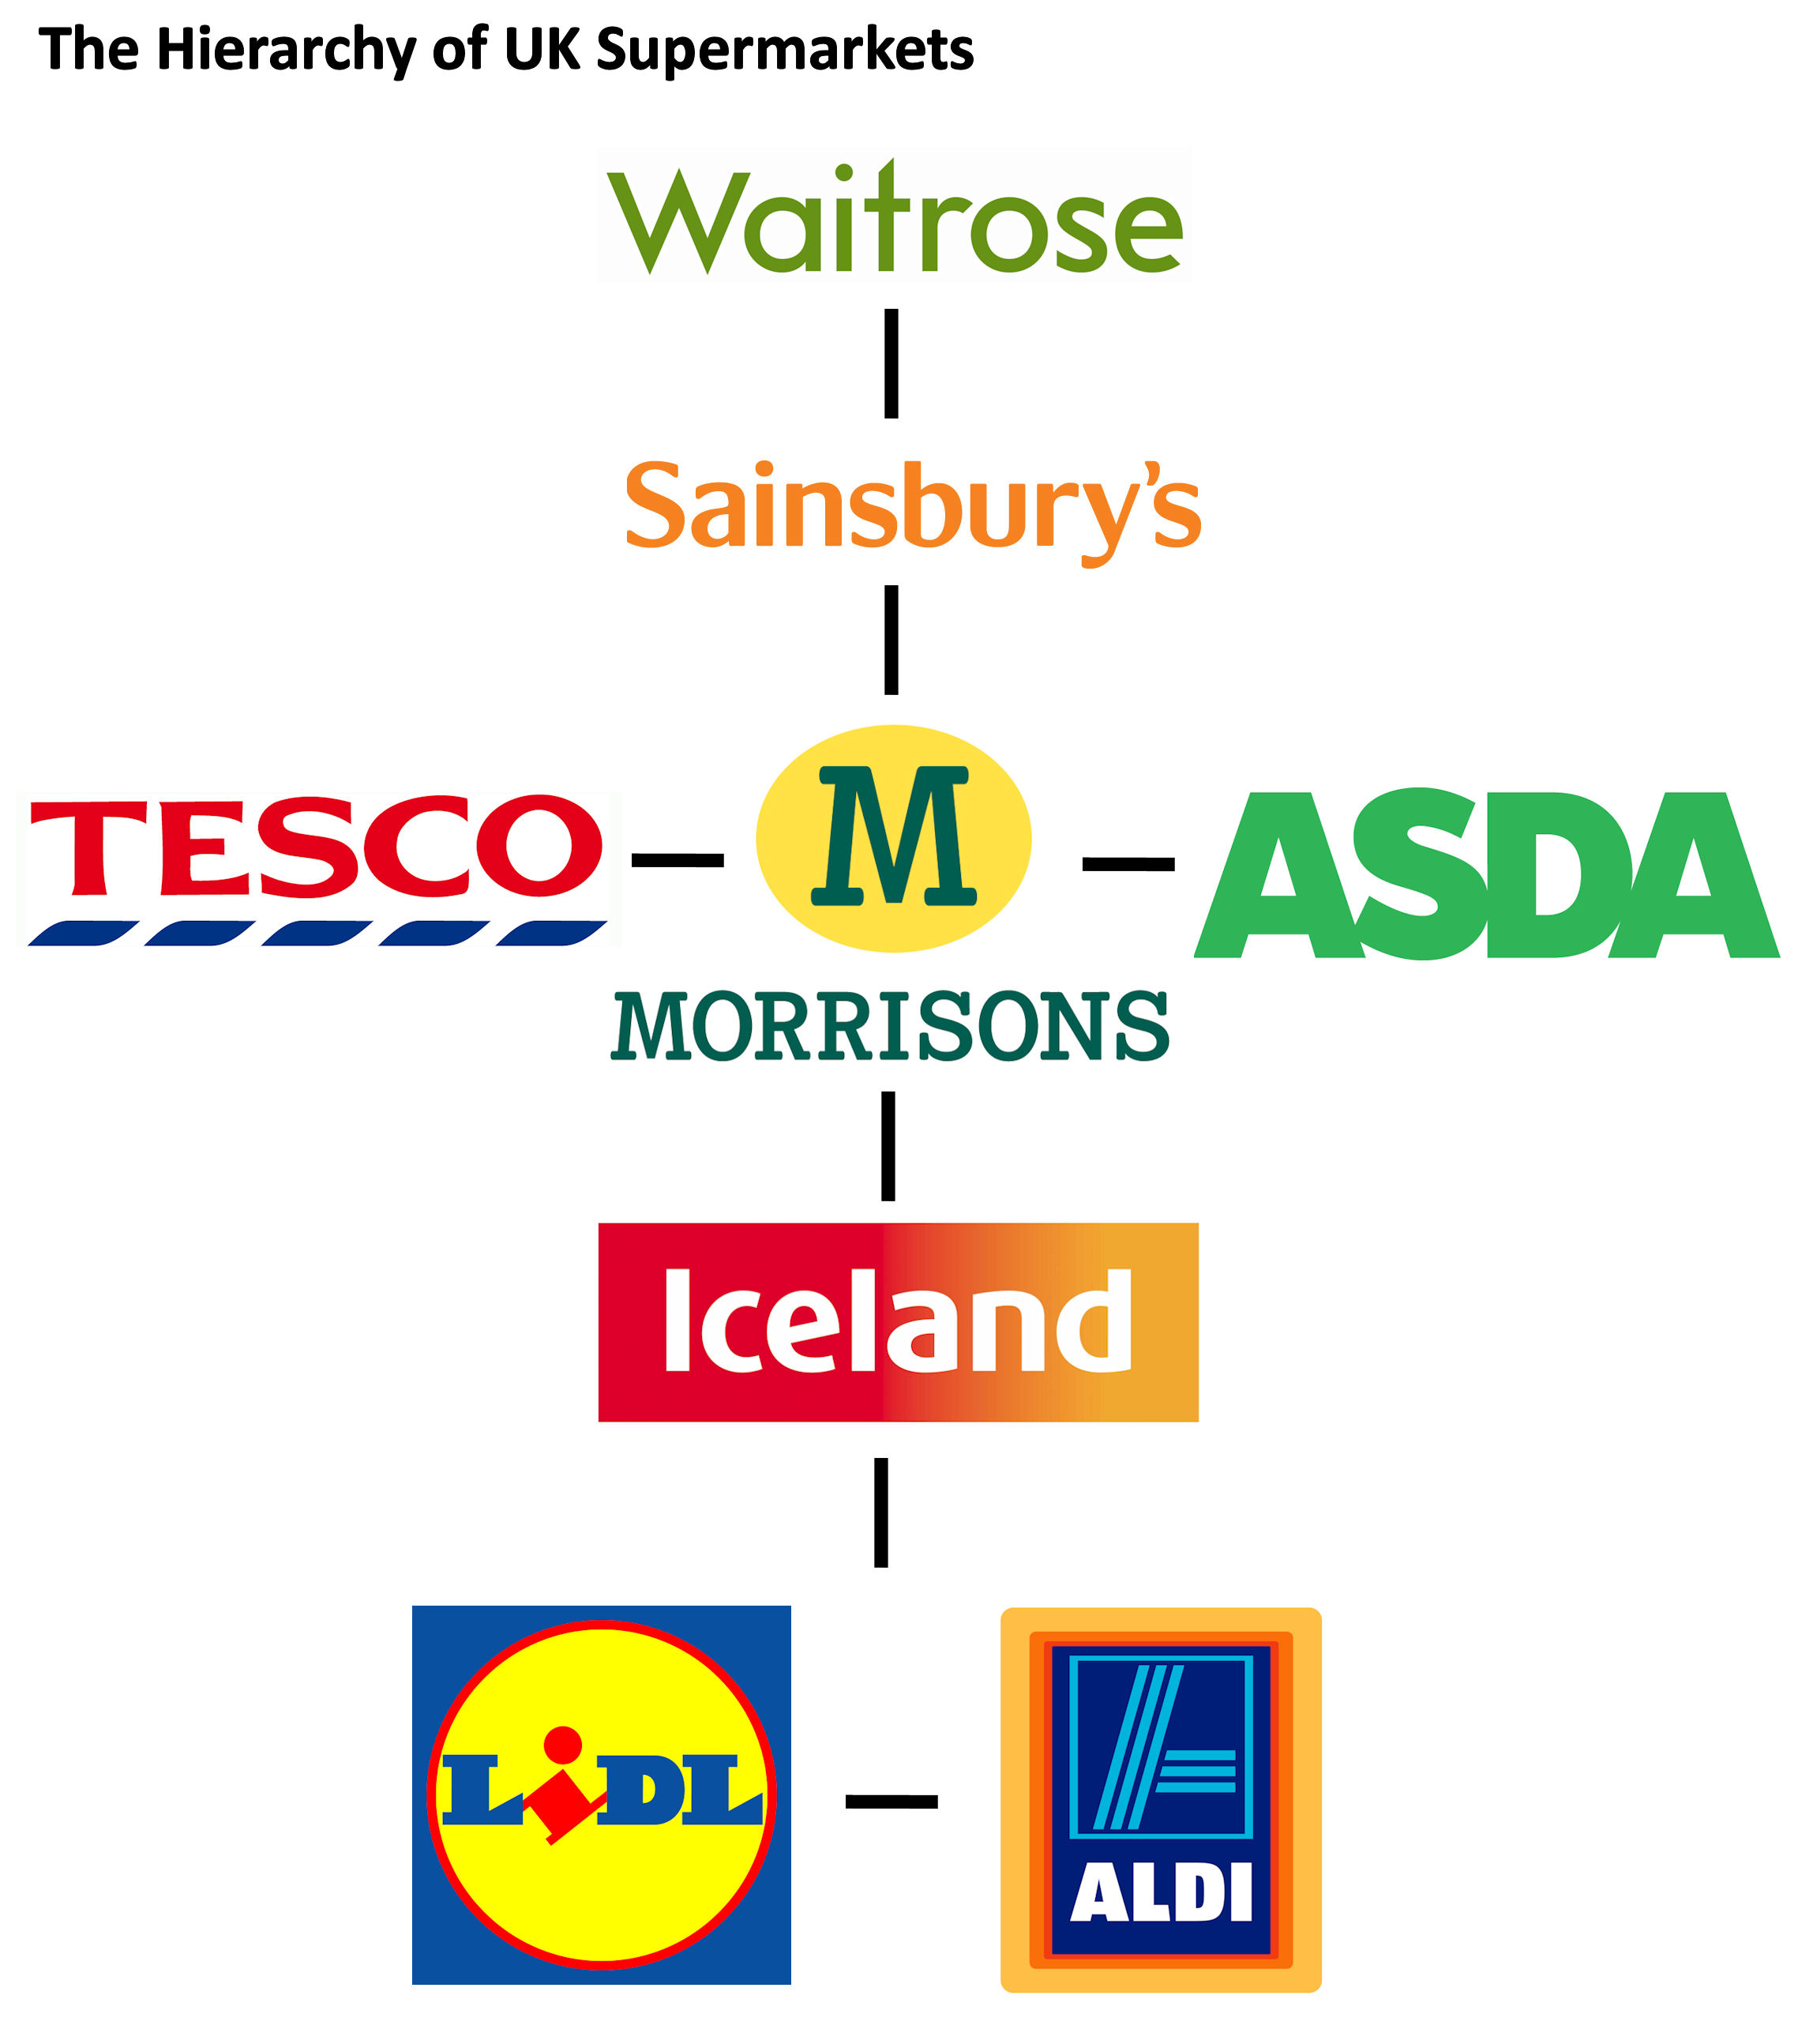 tesco market structure The market structure where the tesco is operating, for example in the uk, there are many other players in the market which are offering the same products as the uk, hence the price and output of the products offered by tesco is being decided by the supply and demand mechanism.